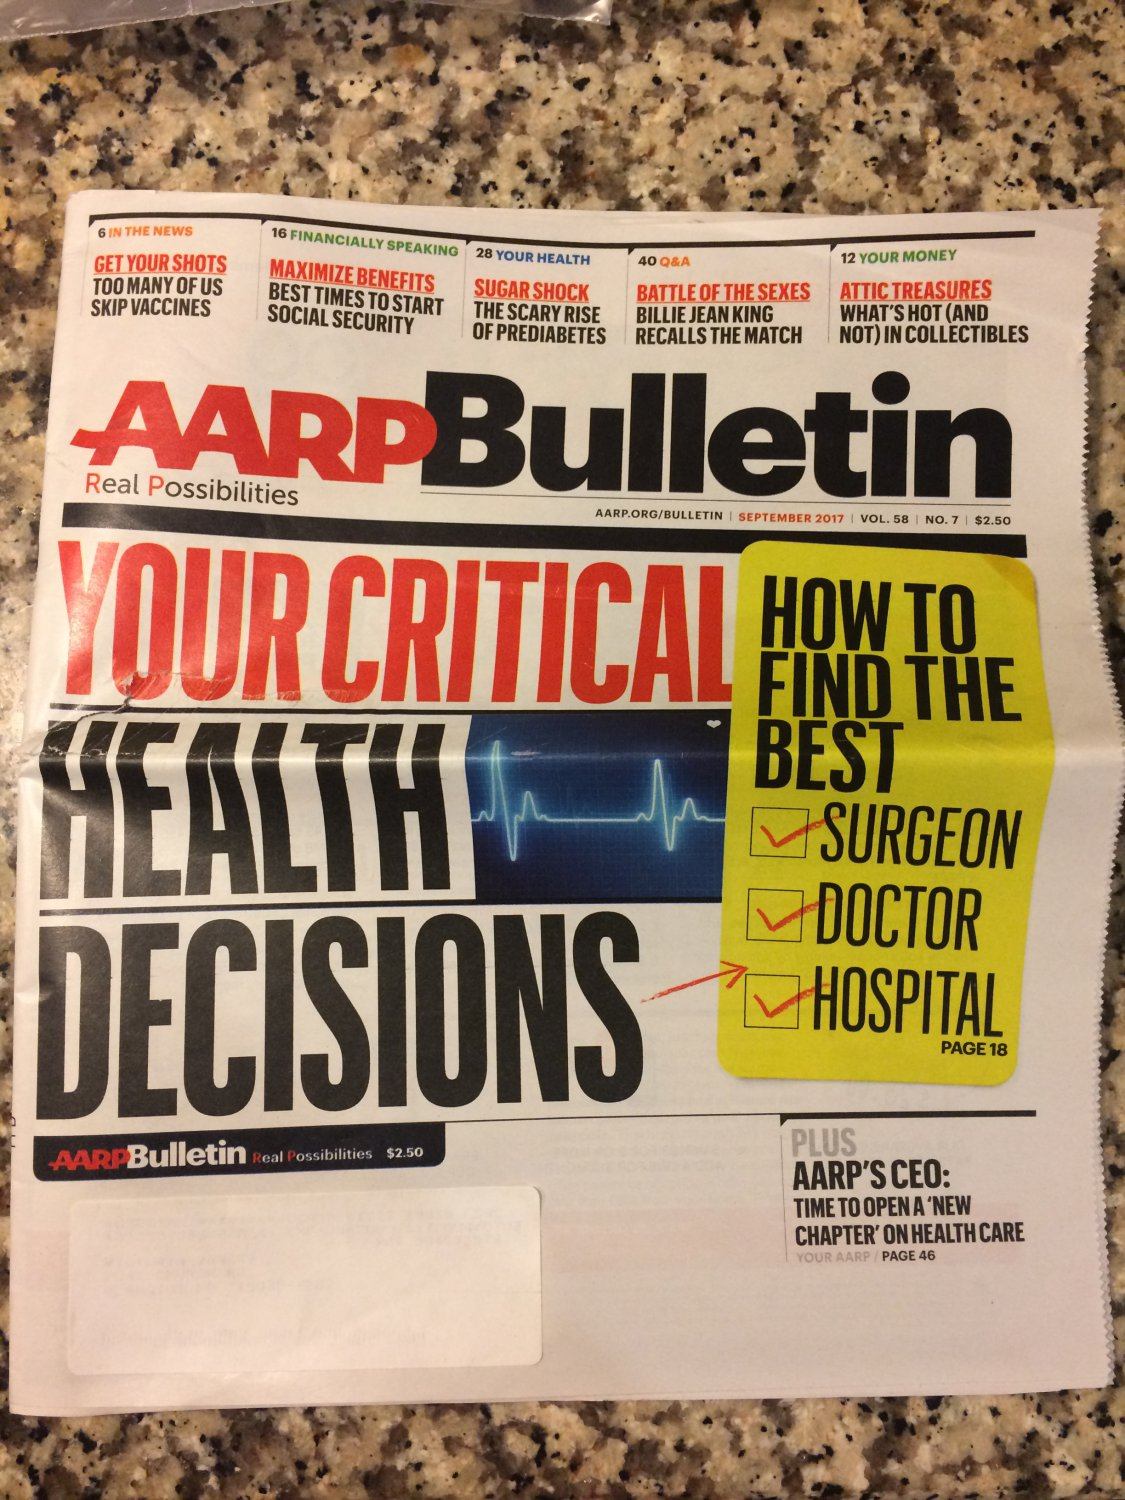 AARP Bulletin September 2017 Vol. 58, No. 7 Your Critical Health Decitions